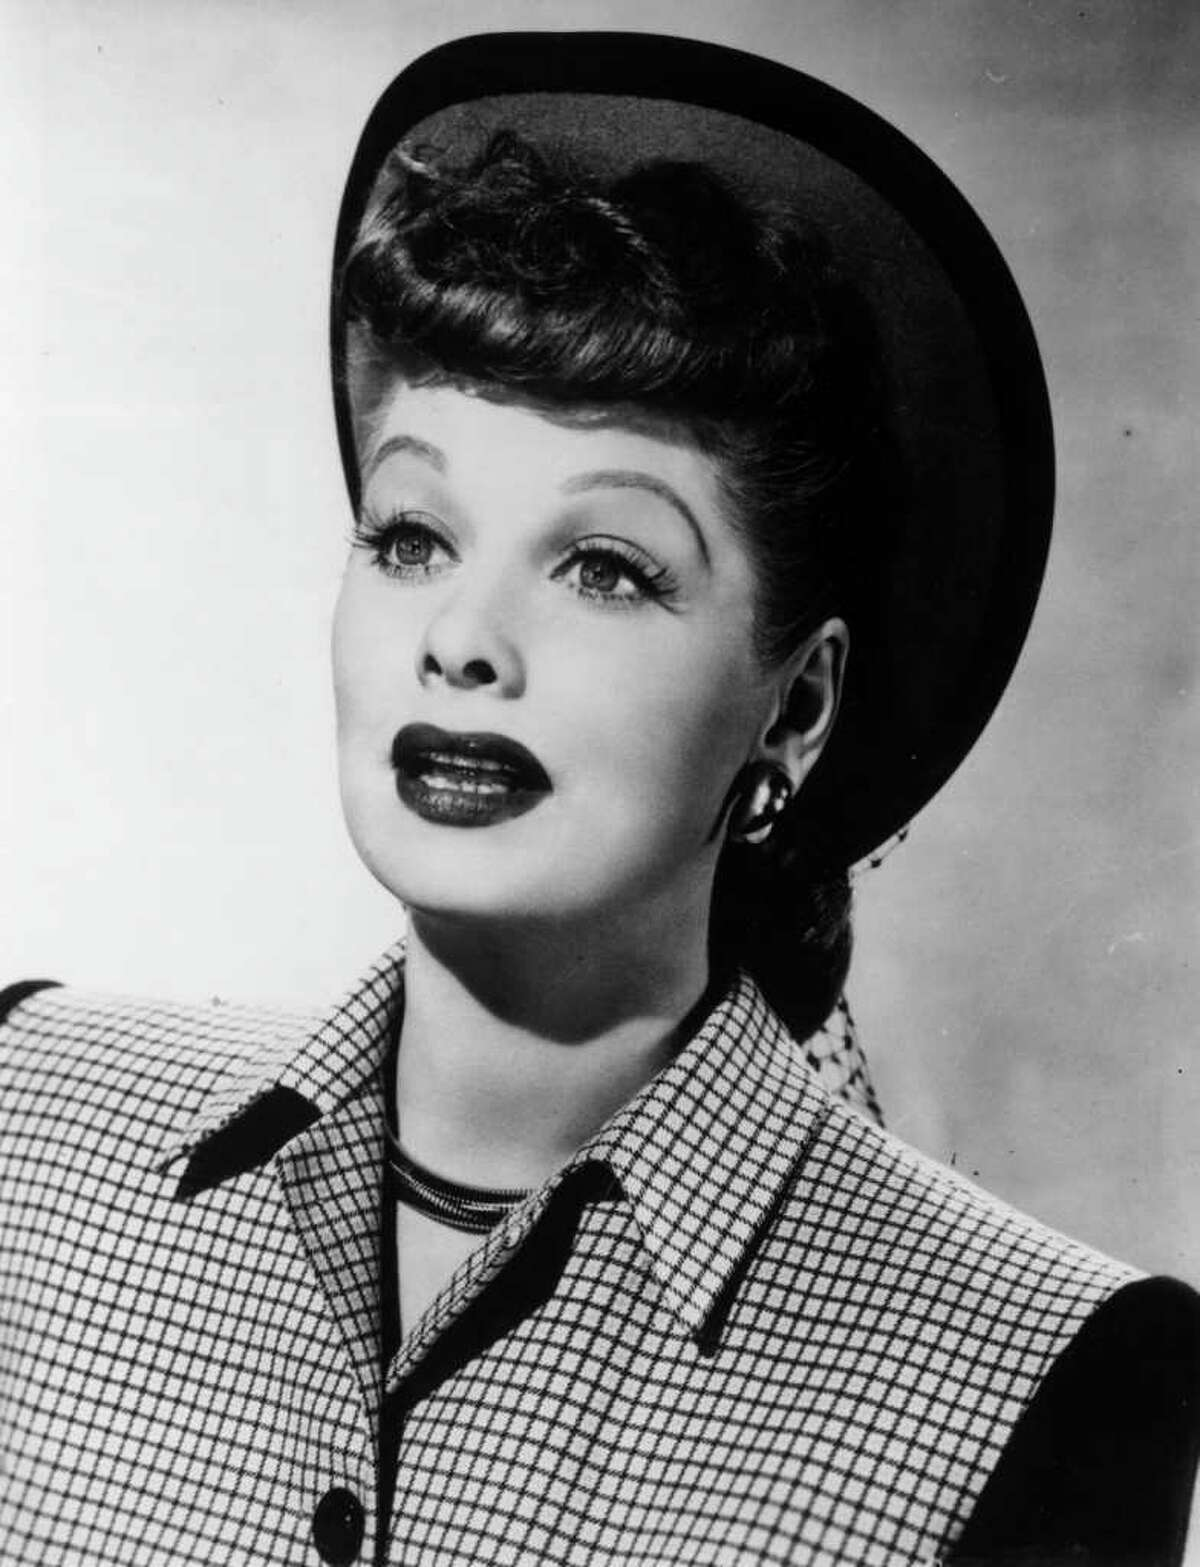 21st August 1947: American comic actress Lucille Ball (1910 - 1989) wearing an autumn hat called the 'Career Woman Hat' in bright green felt with a deep brown border, worn off the face to complement Ms Ball's coiled hairstyle, which has curls over the forehead and a reciprocal coil under the back brim. (Photo by Hulton Archive/Getty Images)